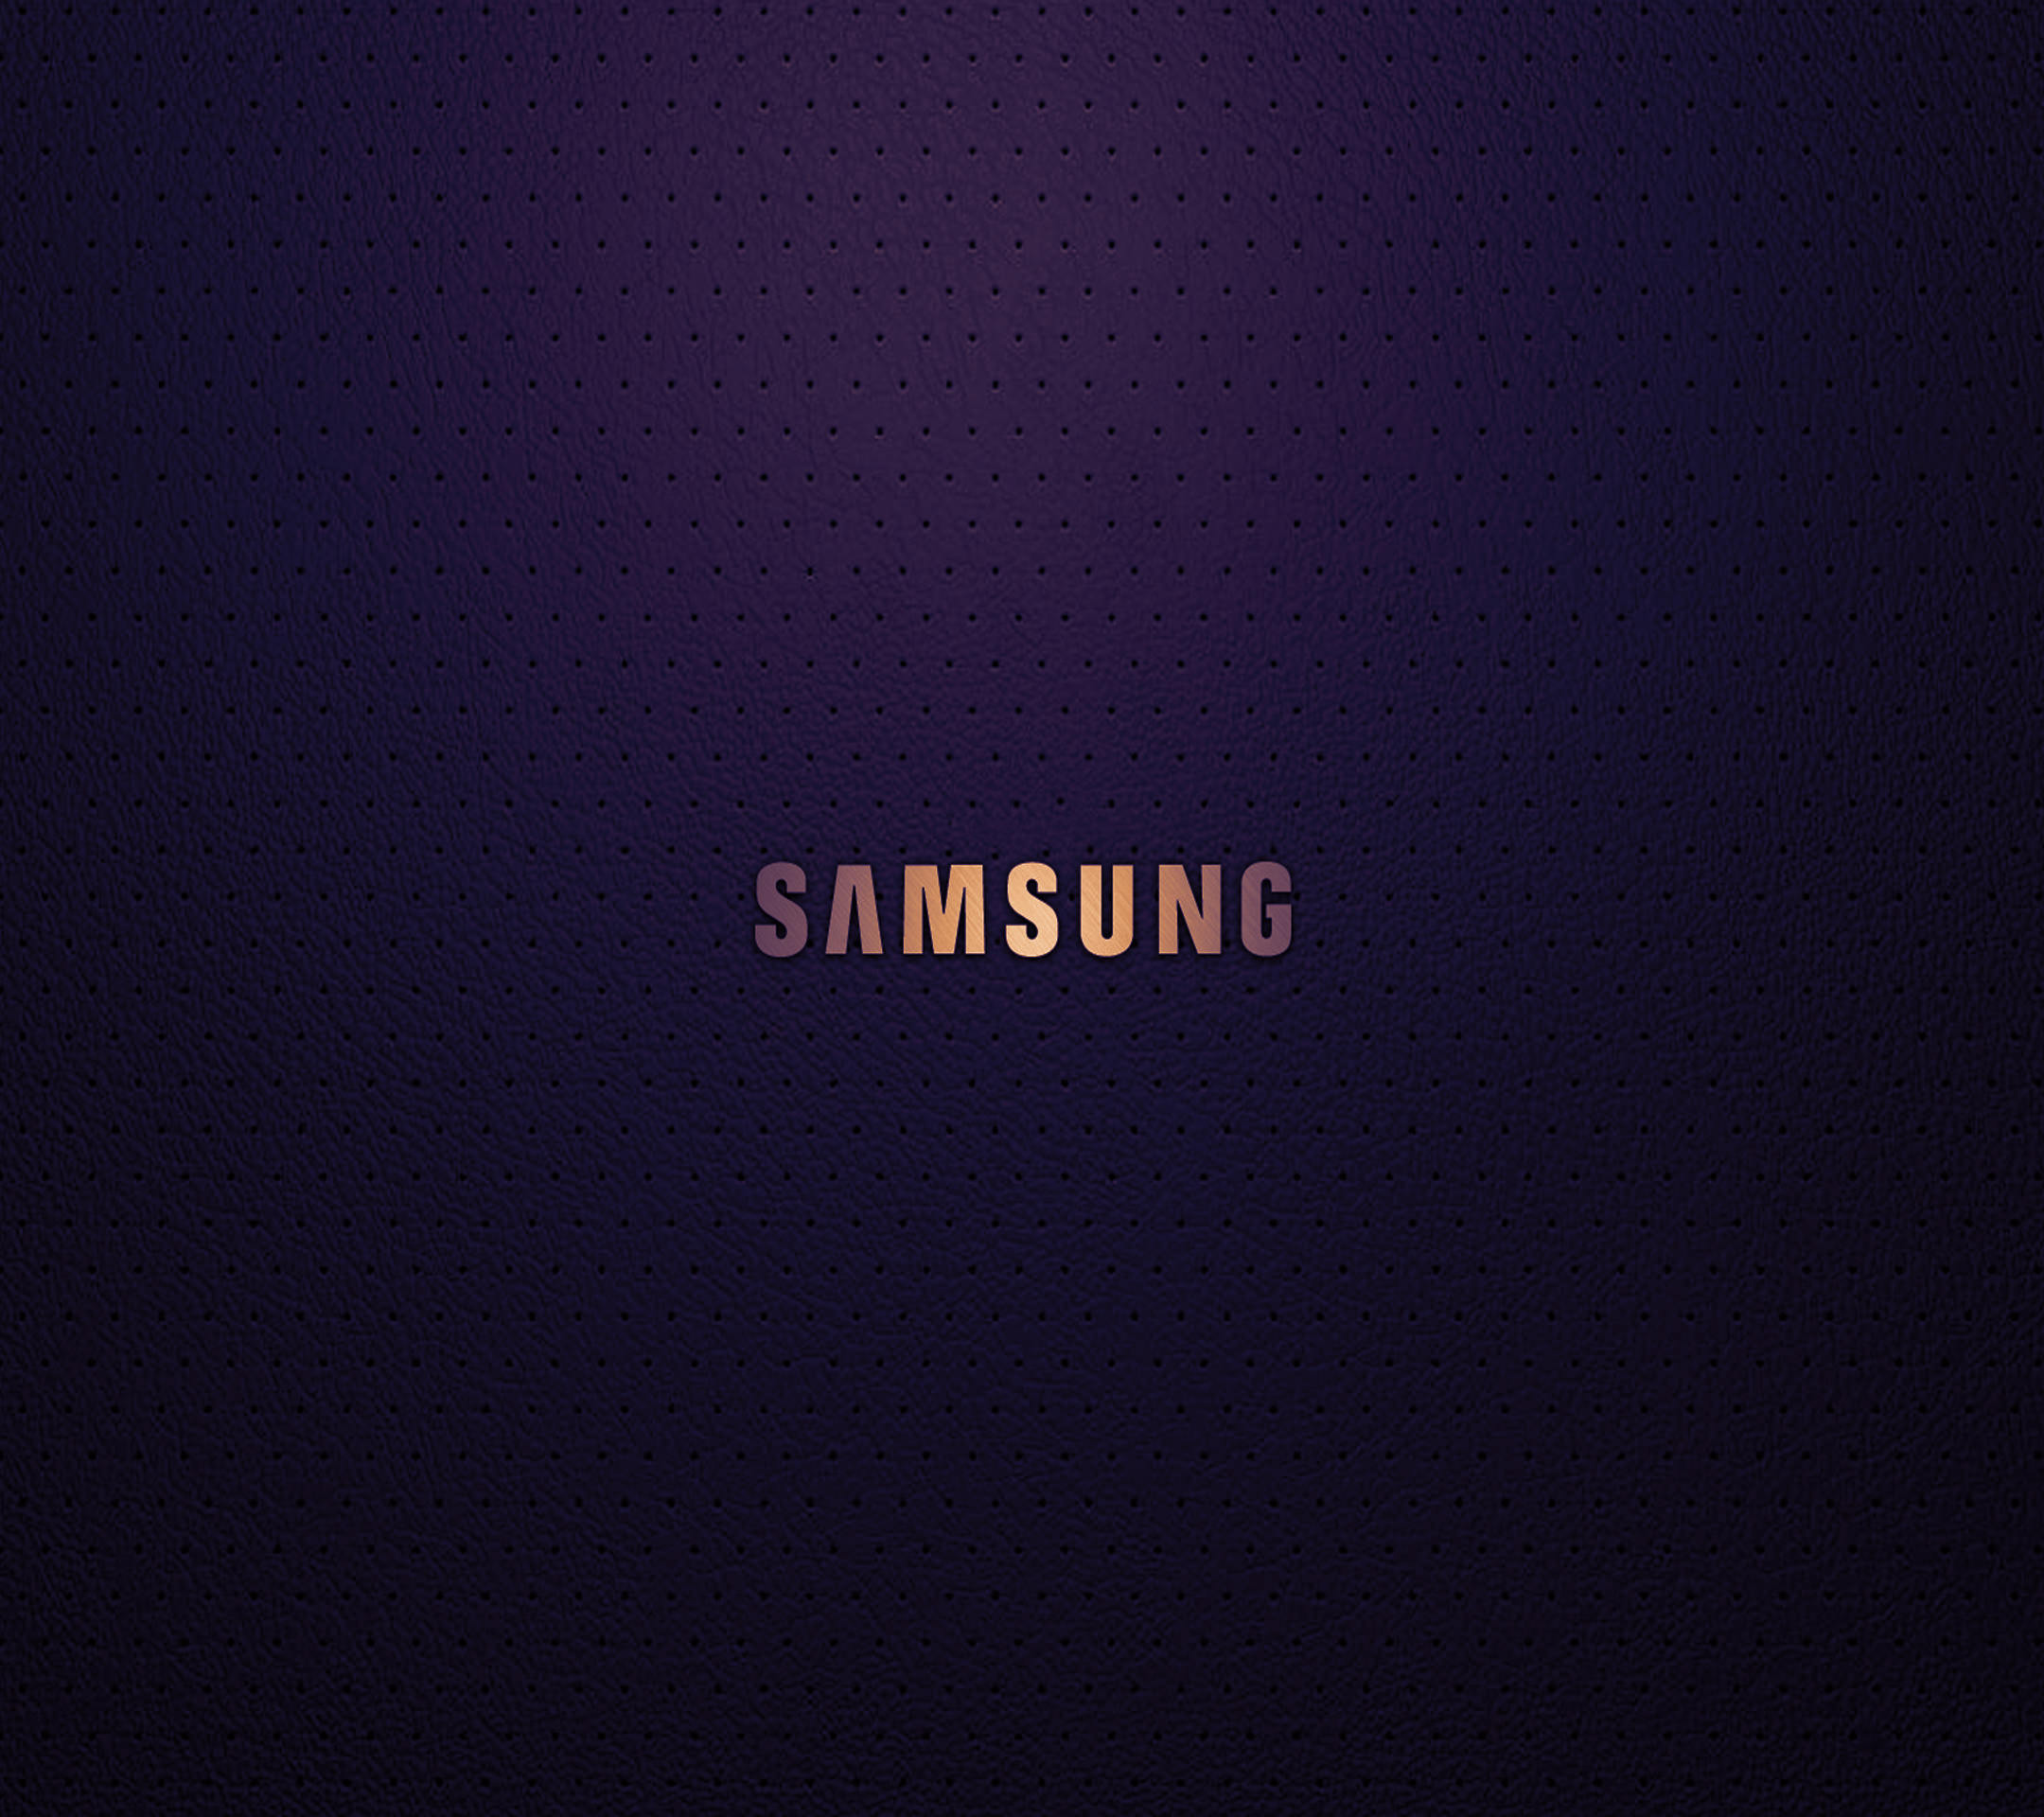 Samsung logo smartphone for Android wallpaper 5 home screens